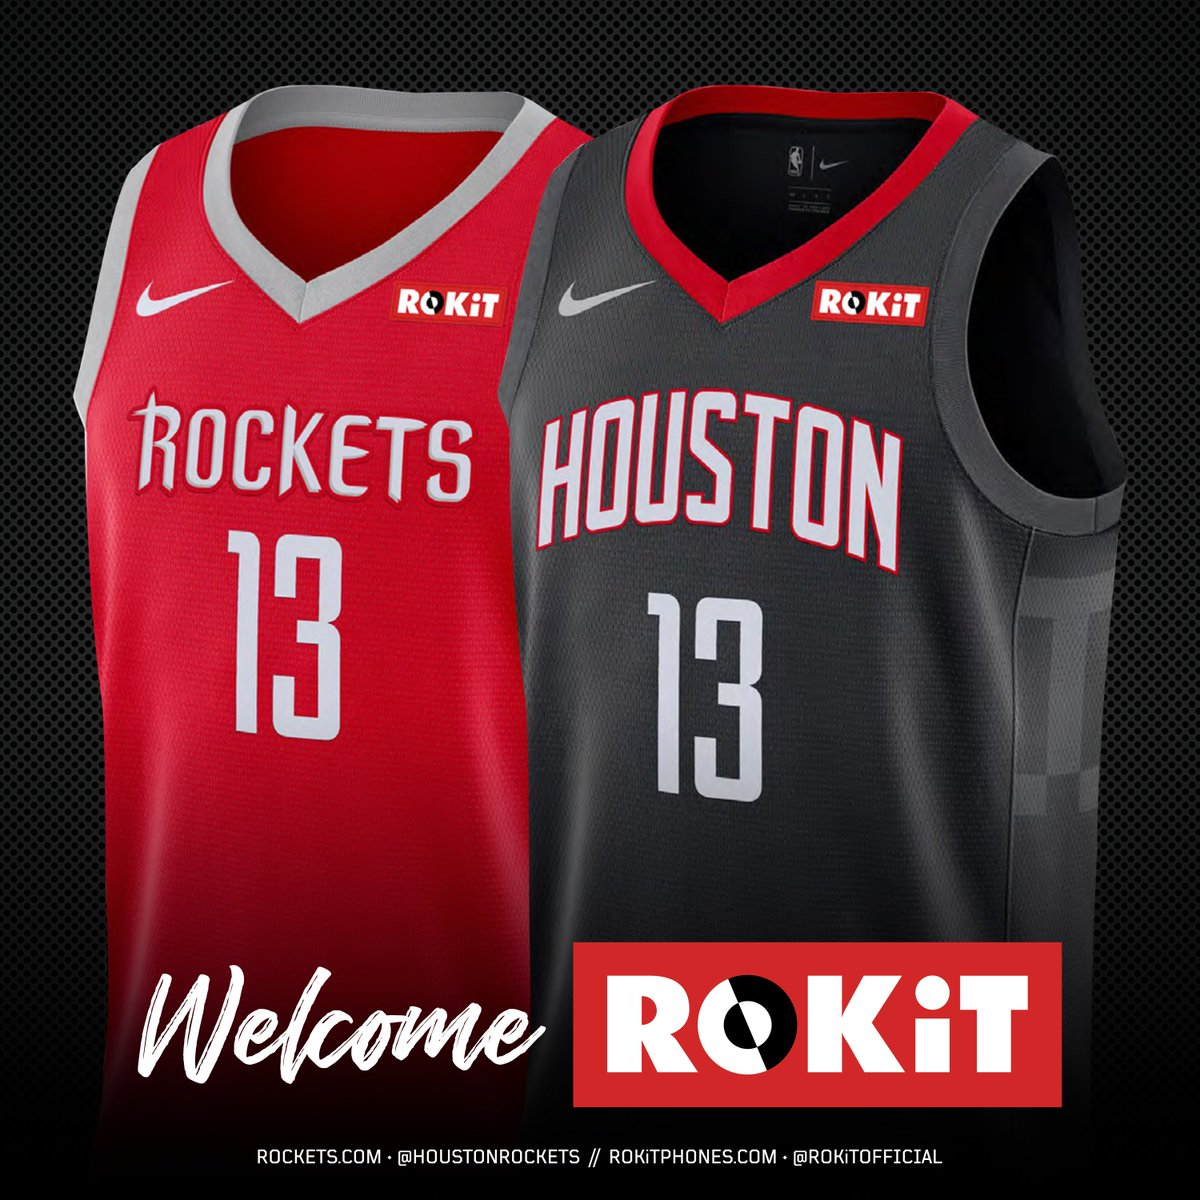 36035e4a4aa7 Houston Rockets on Twitter